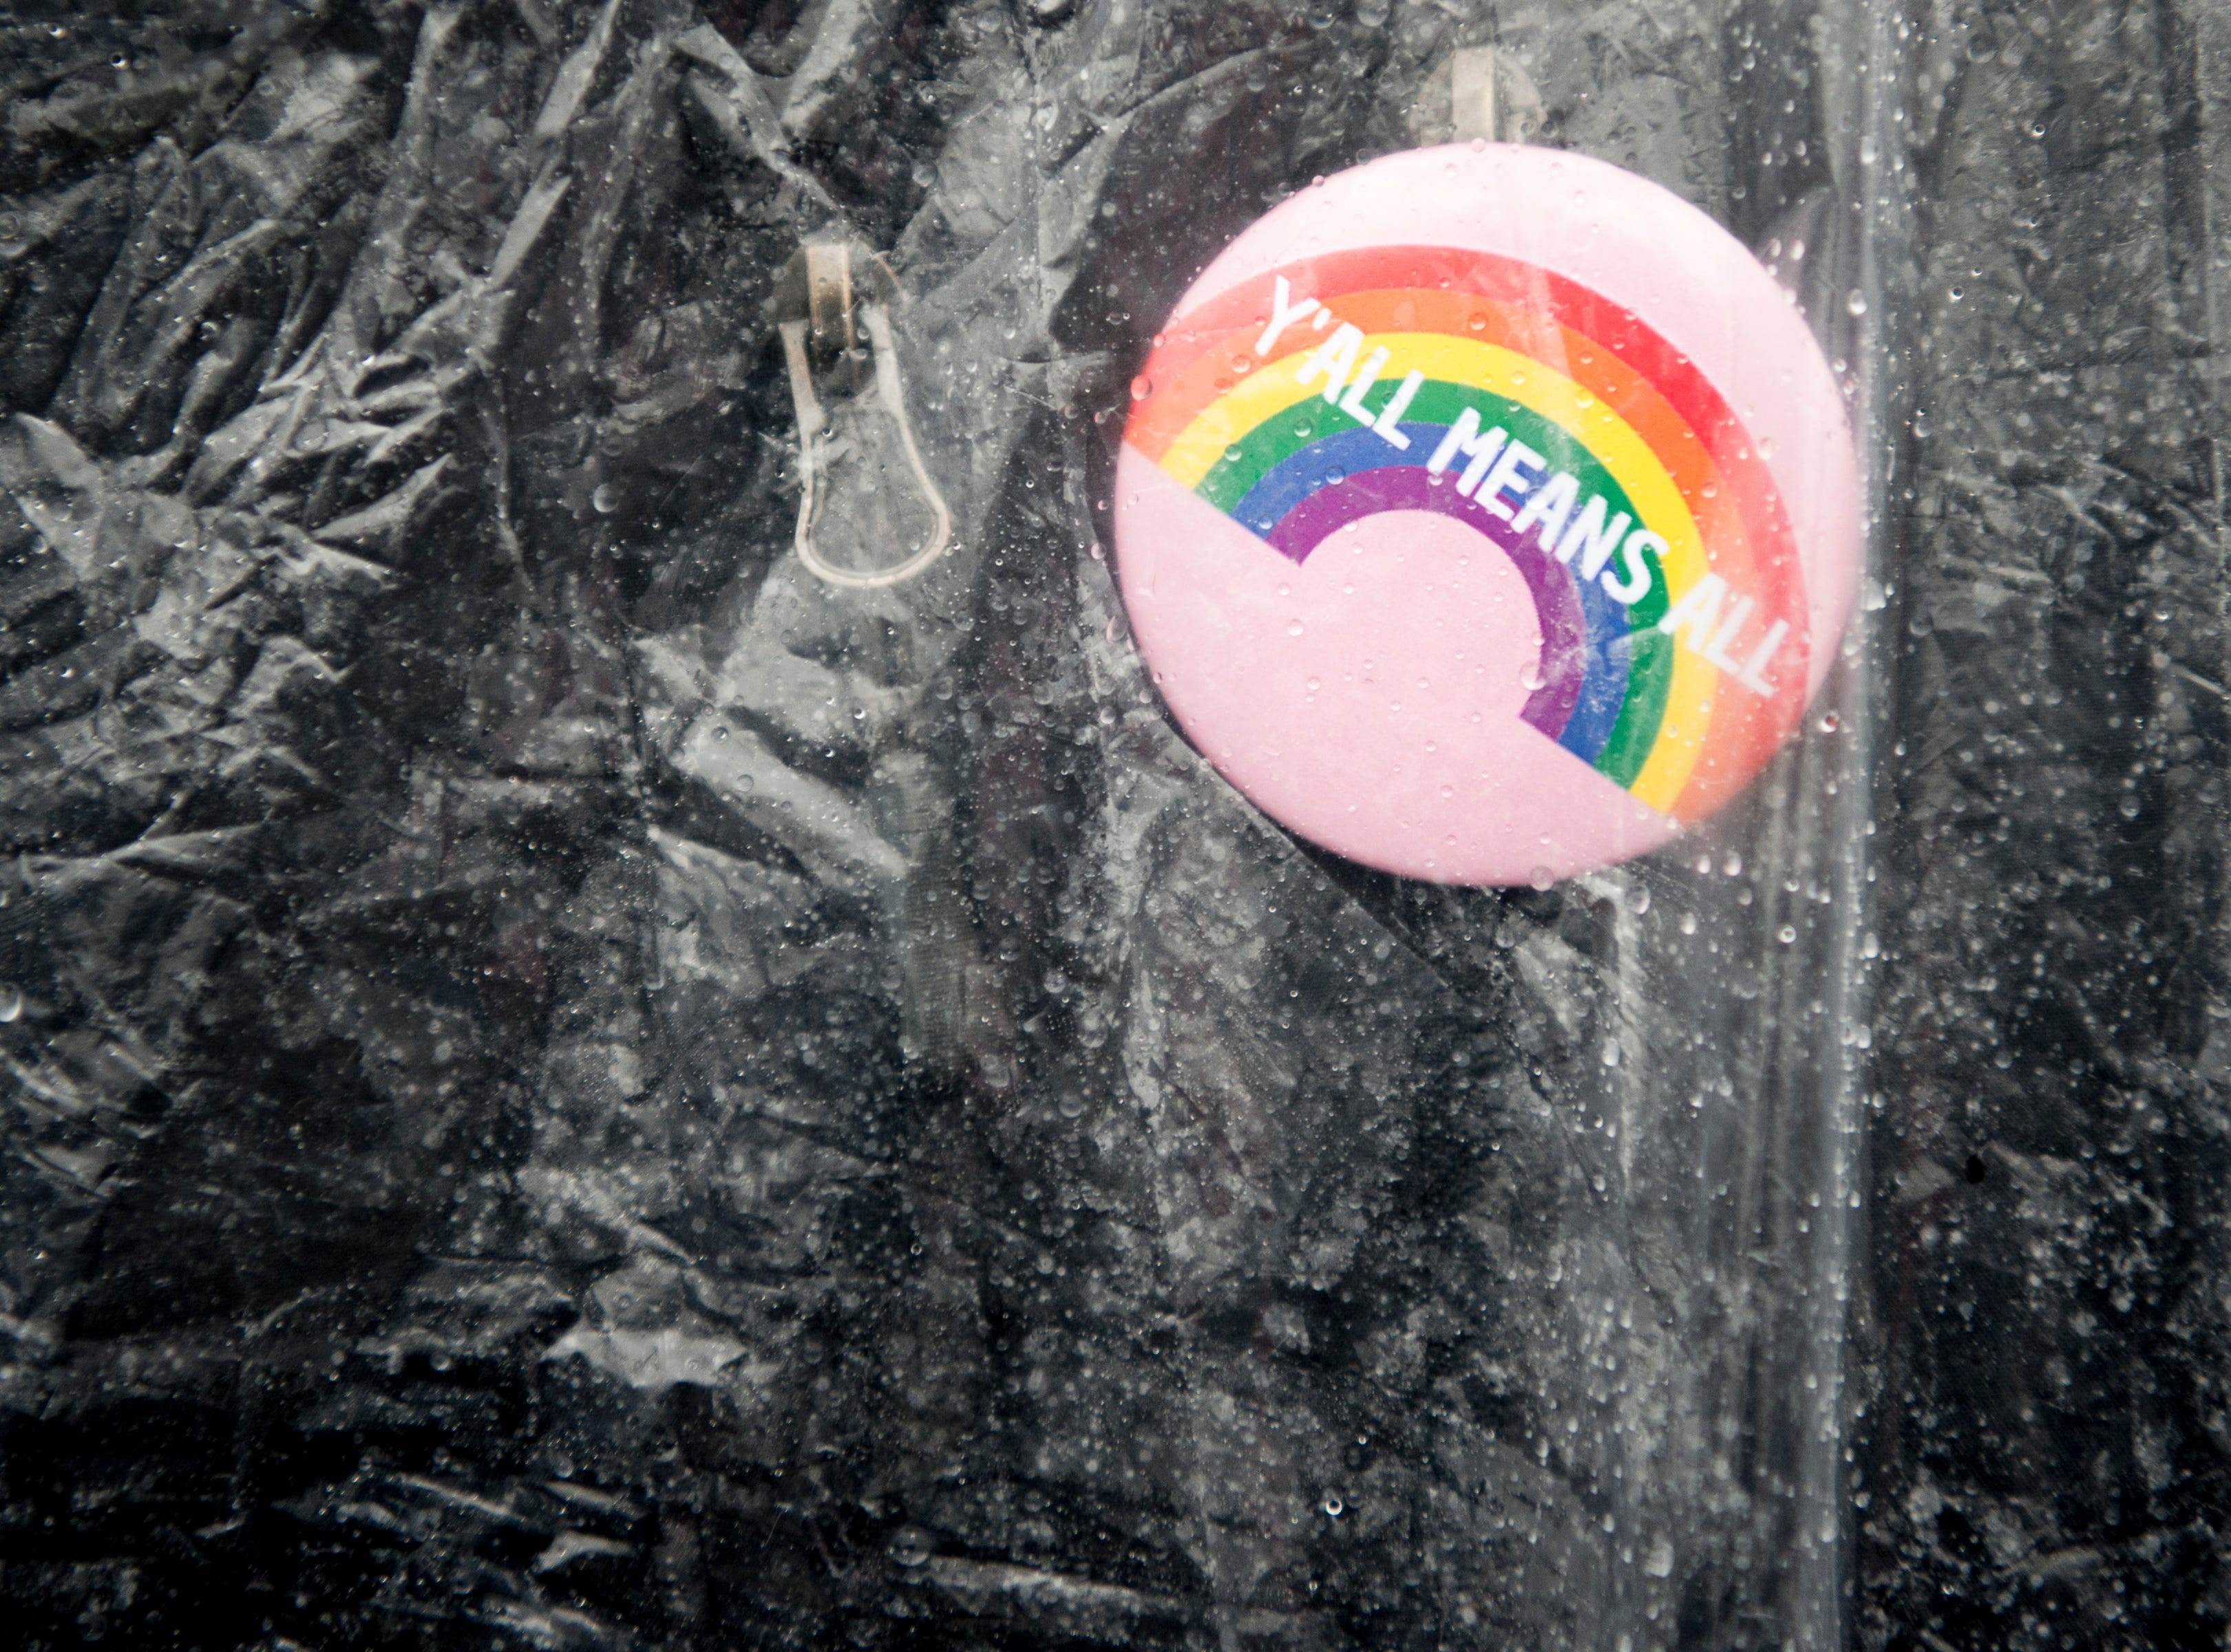 """A demonstrator wears a """"Y'all Means All"""" pin at the 2019 Knoxville Women's March at Chilhowee Park in Knoxville, Tennessee on Saturday, January 19, 2019."""